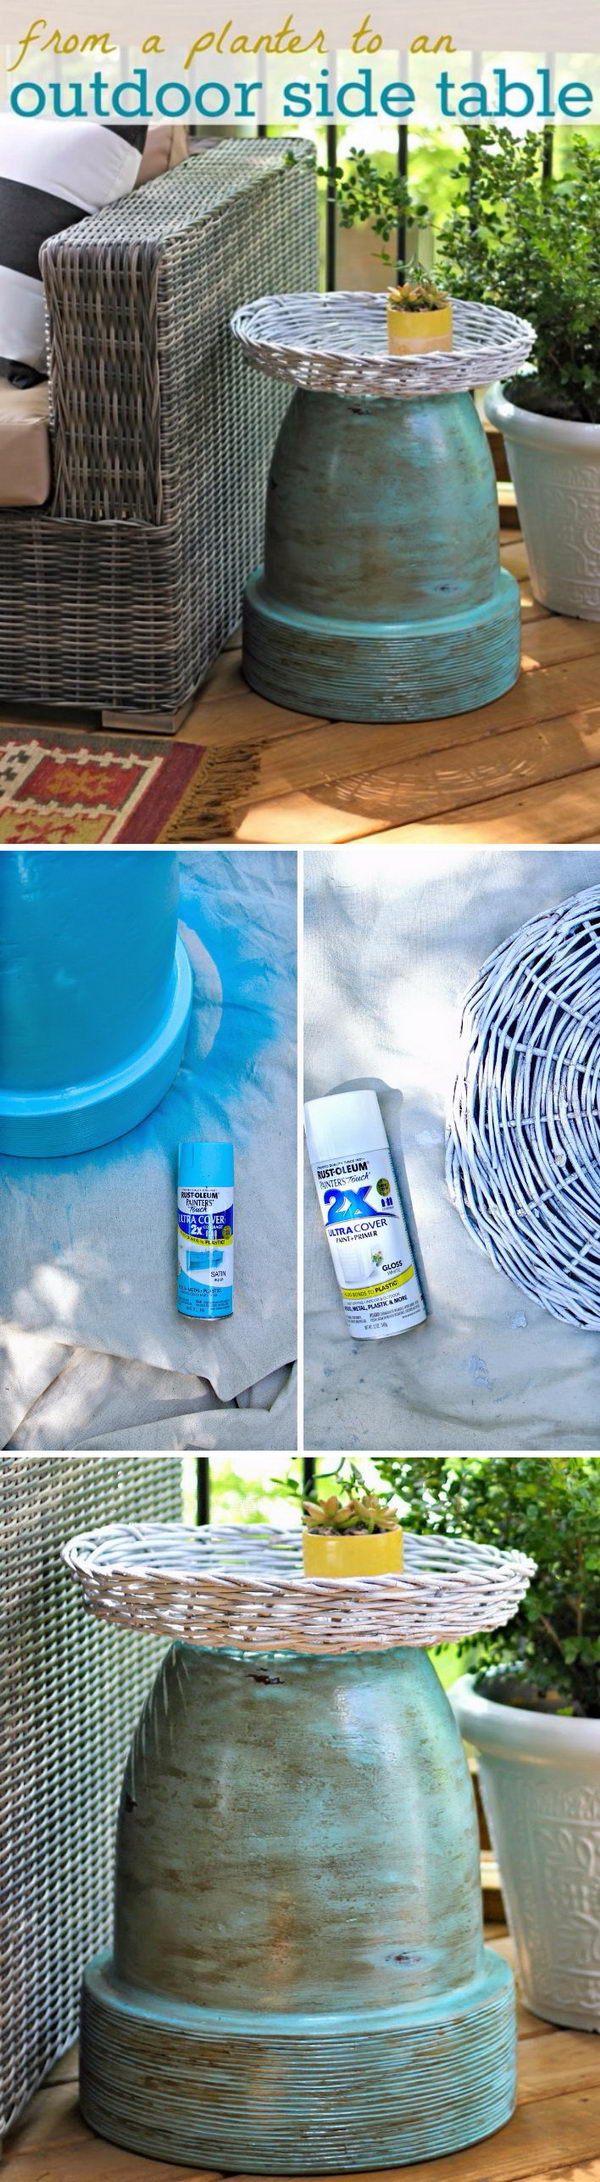 awesome diy side table ideas for outdoors and indoors hative tutorials outdoor accent terracotta pot nautical style end tables small with shelves ceramic cherry fretwork threshold